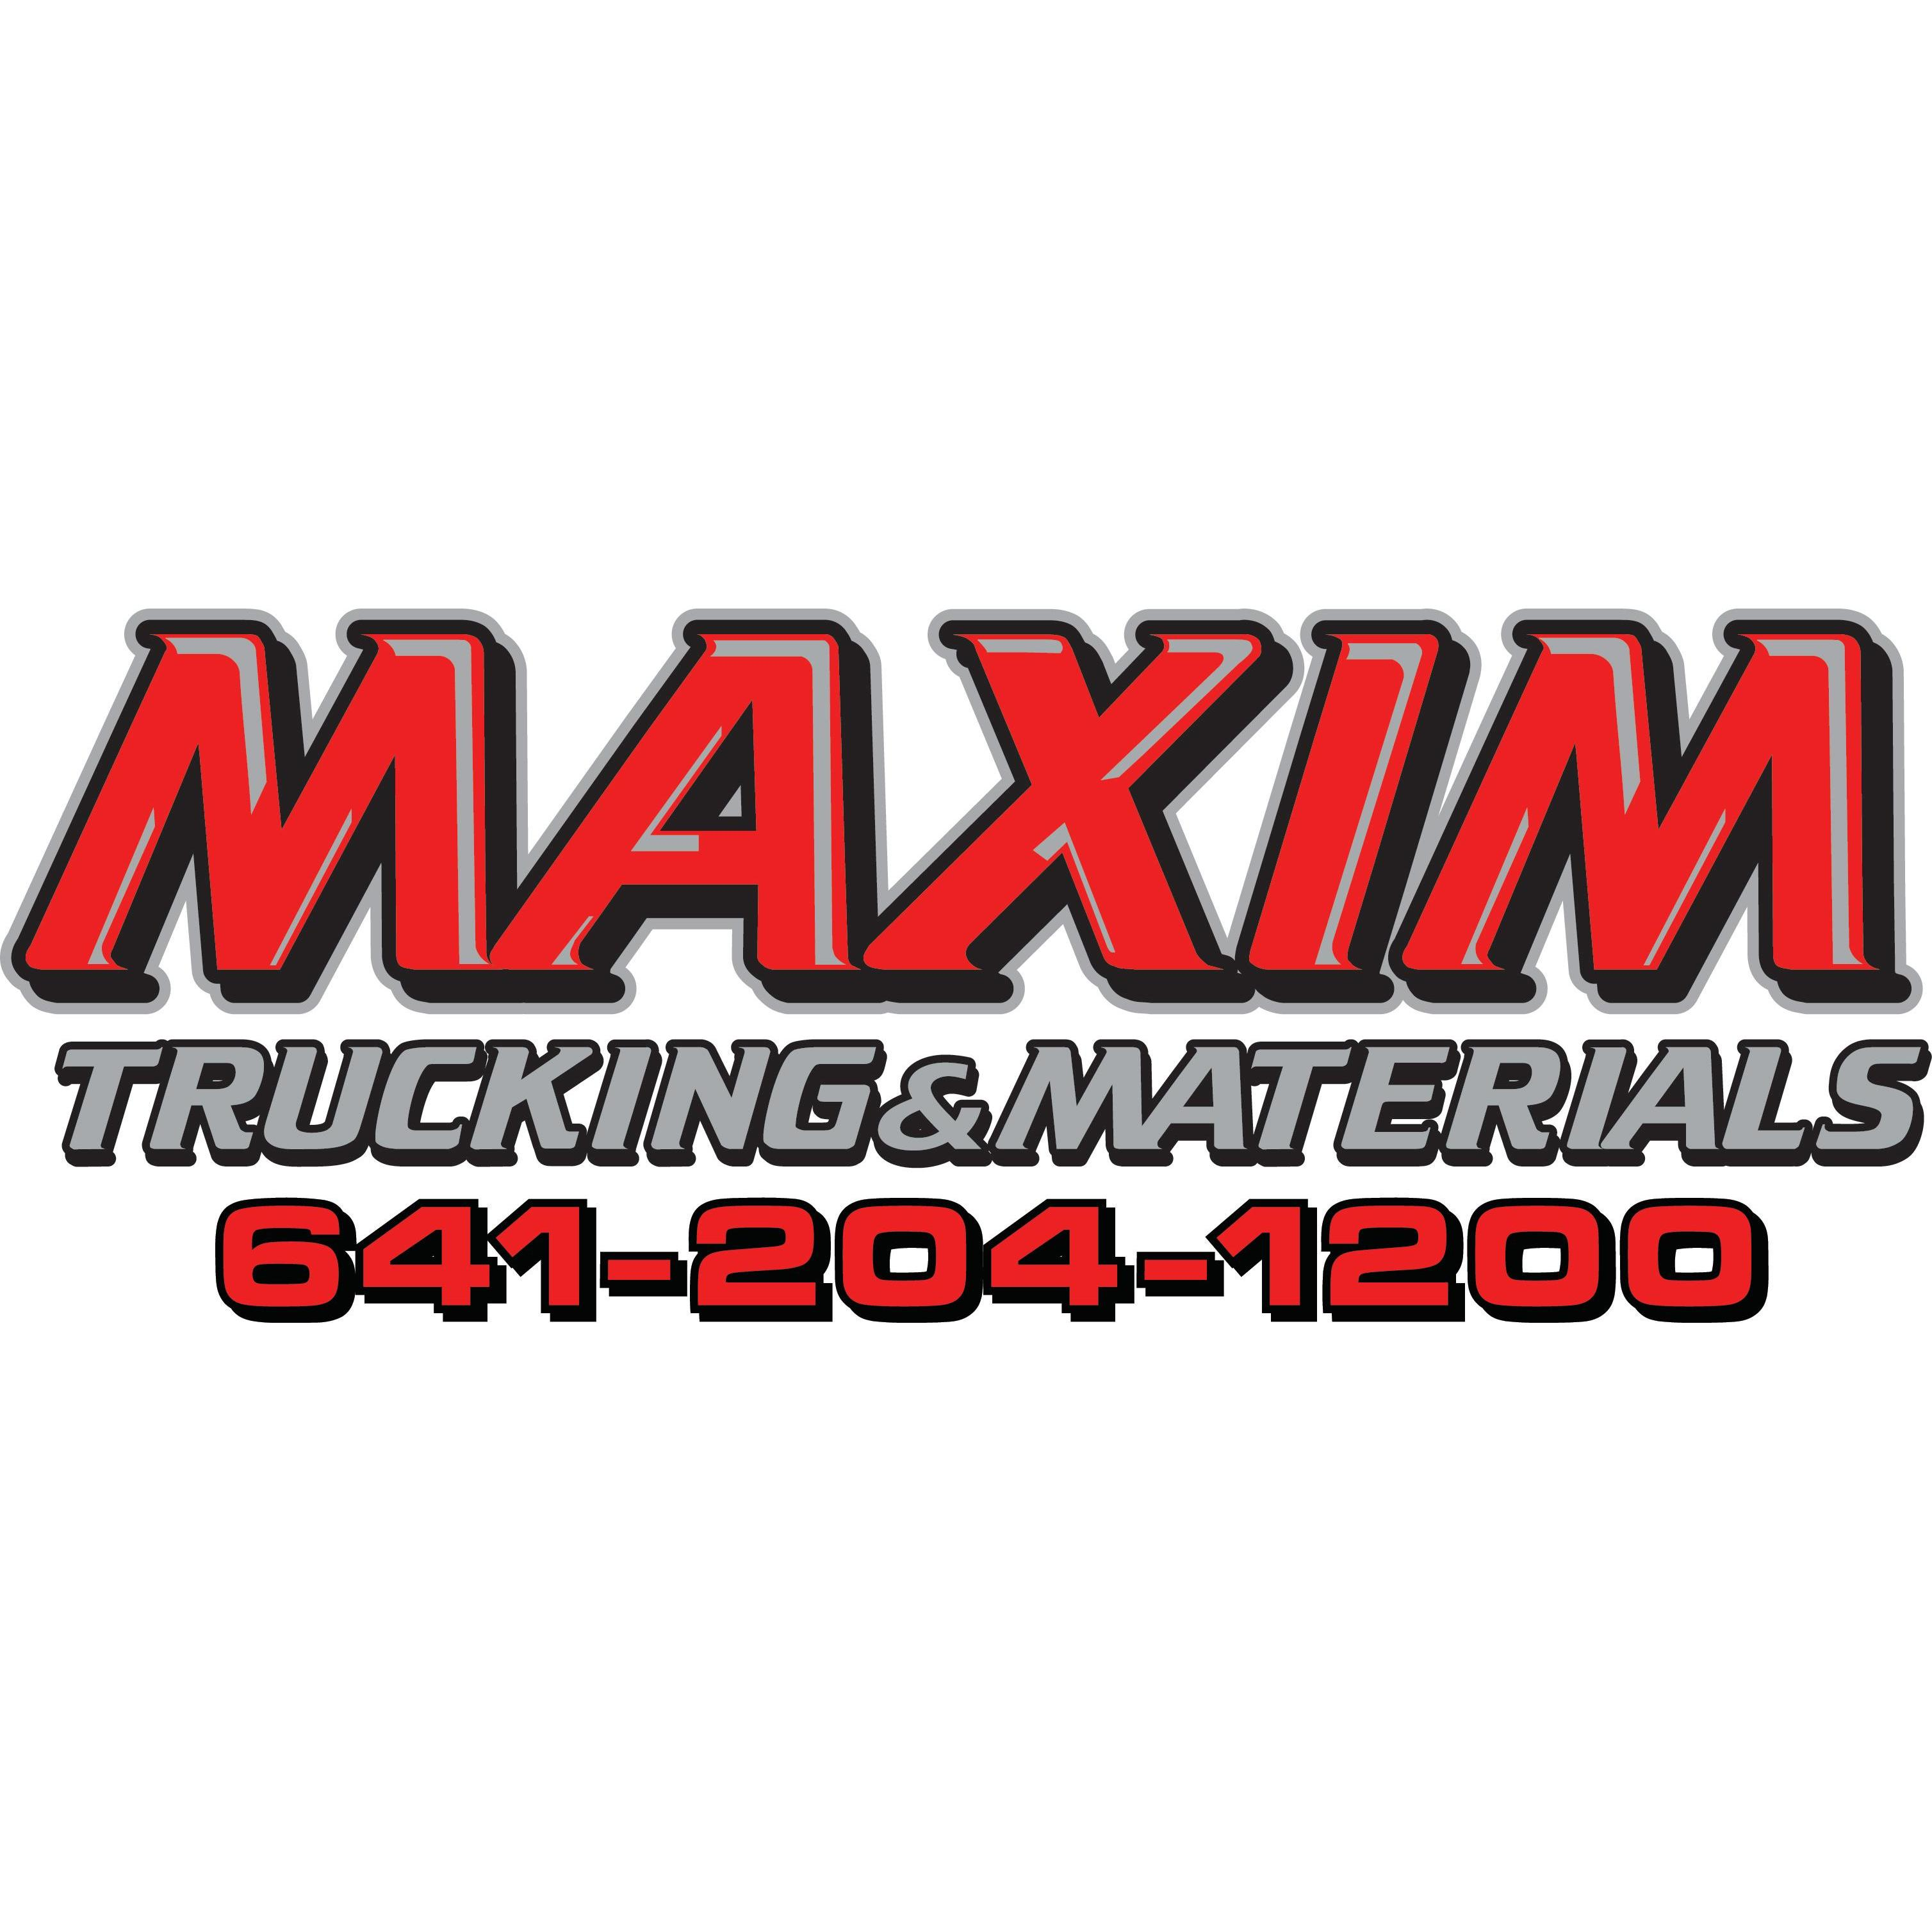 Maxim Trucking & Materials Inc.